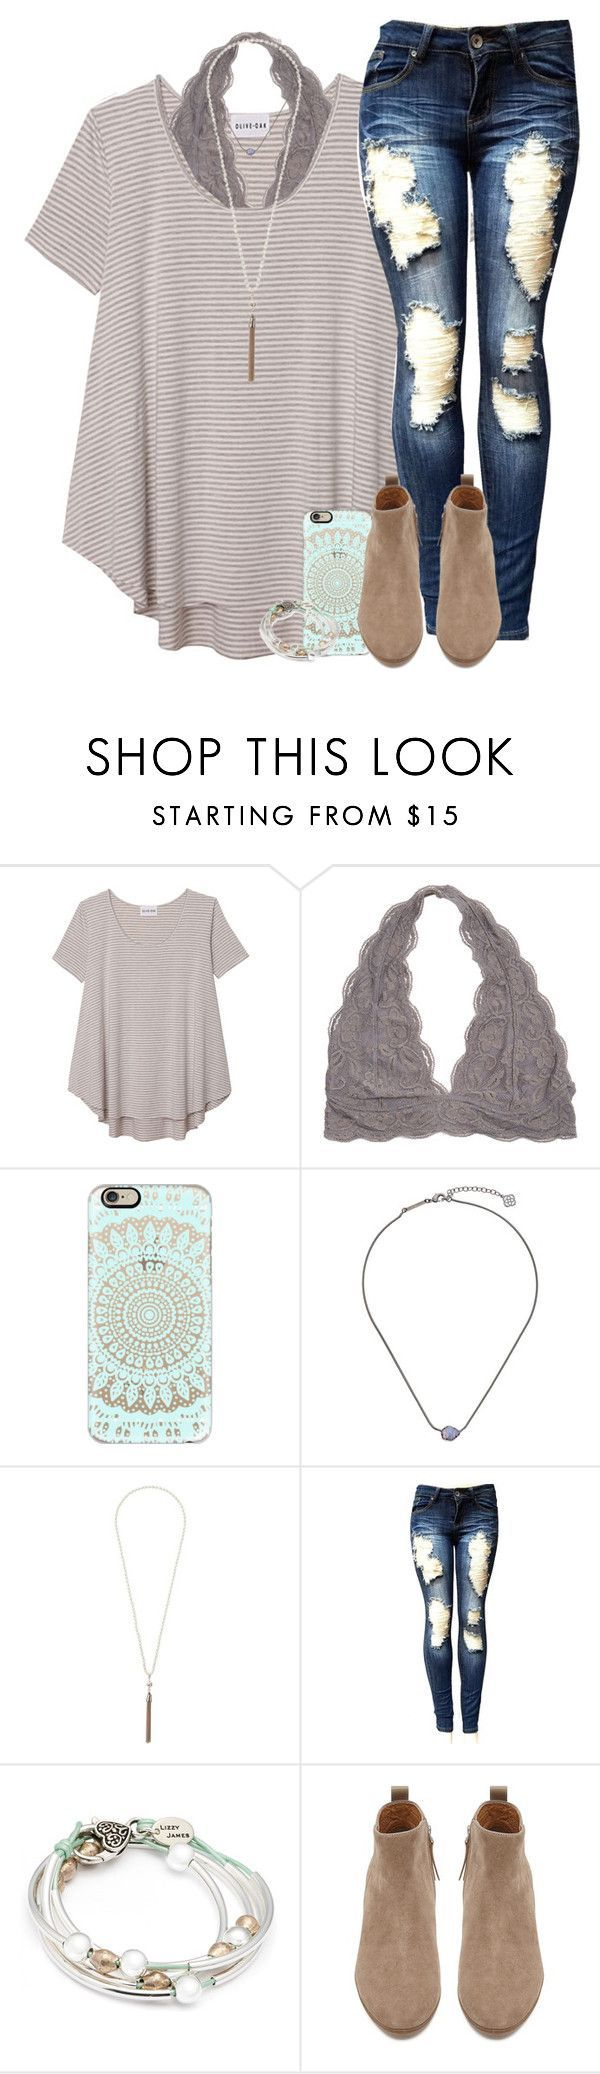 """100 questions nobody asks tag:)"" by wrigley67 on Polyvore featuring Olive + Oak, Casetify, Kendra Scott, Wallis, Lizzy James and Witchery"